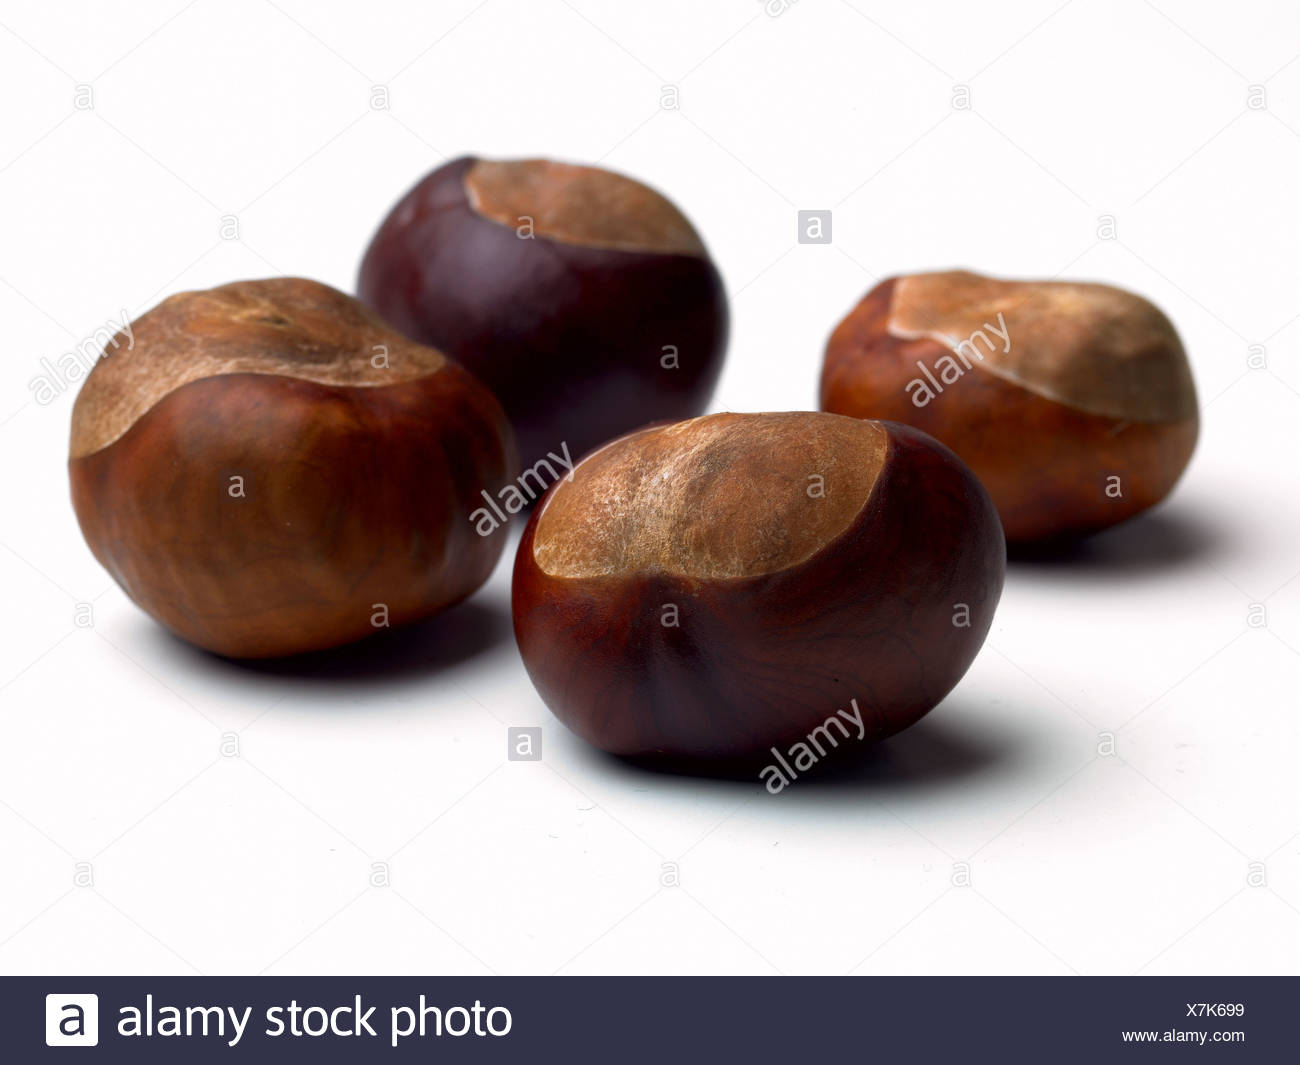 Four conkers, close-up - Stock Image